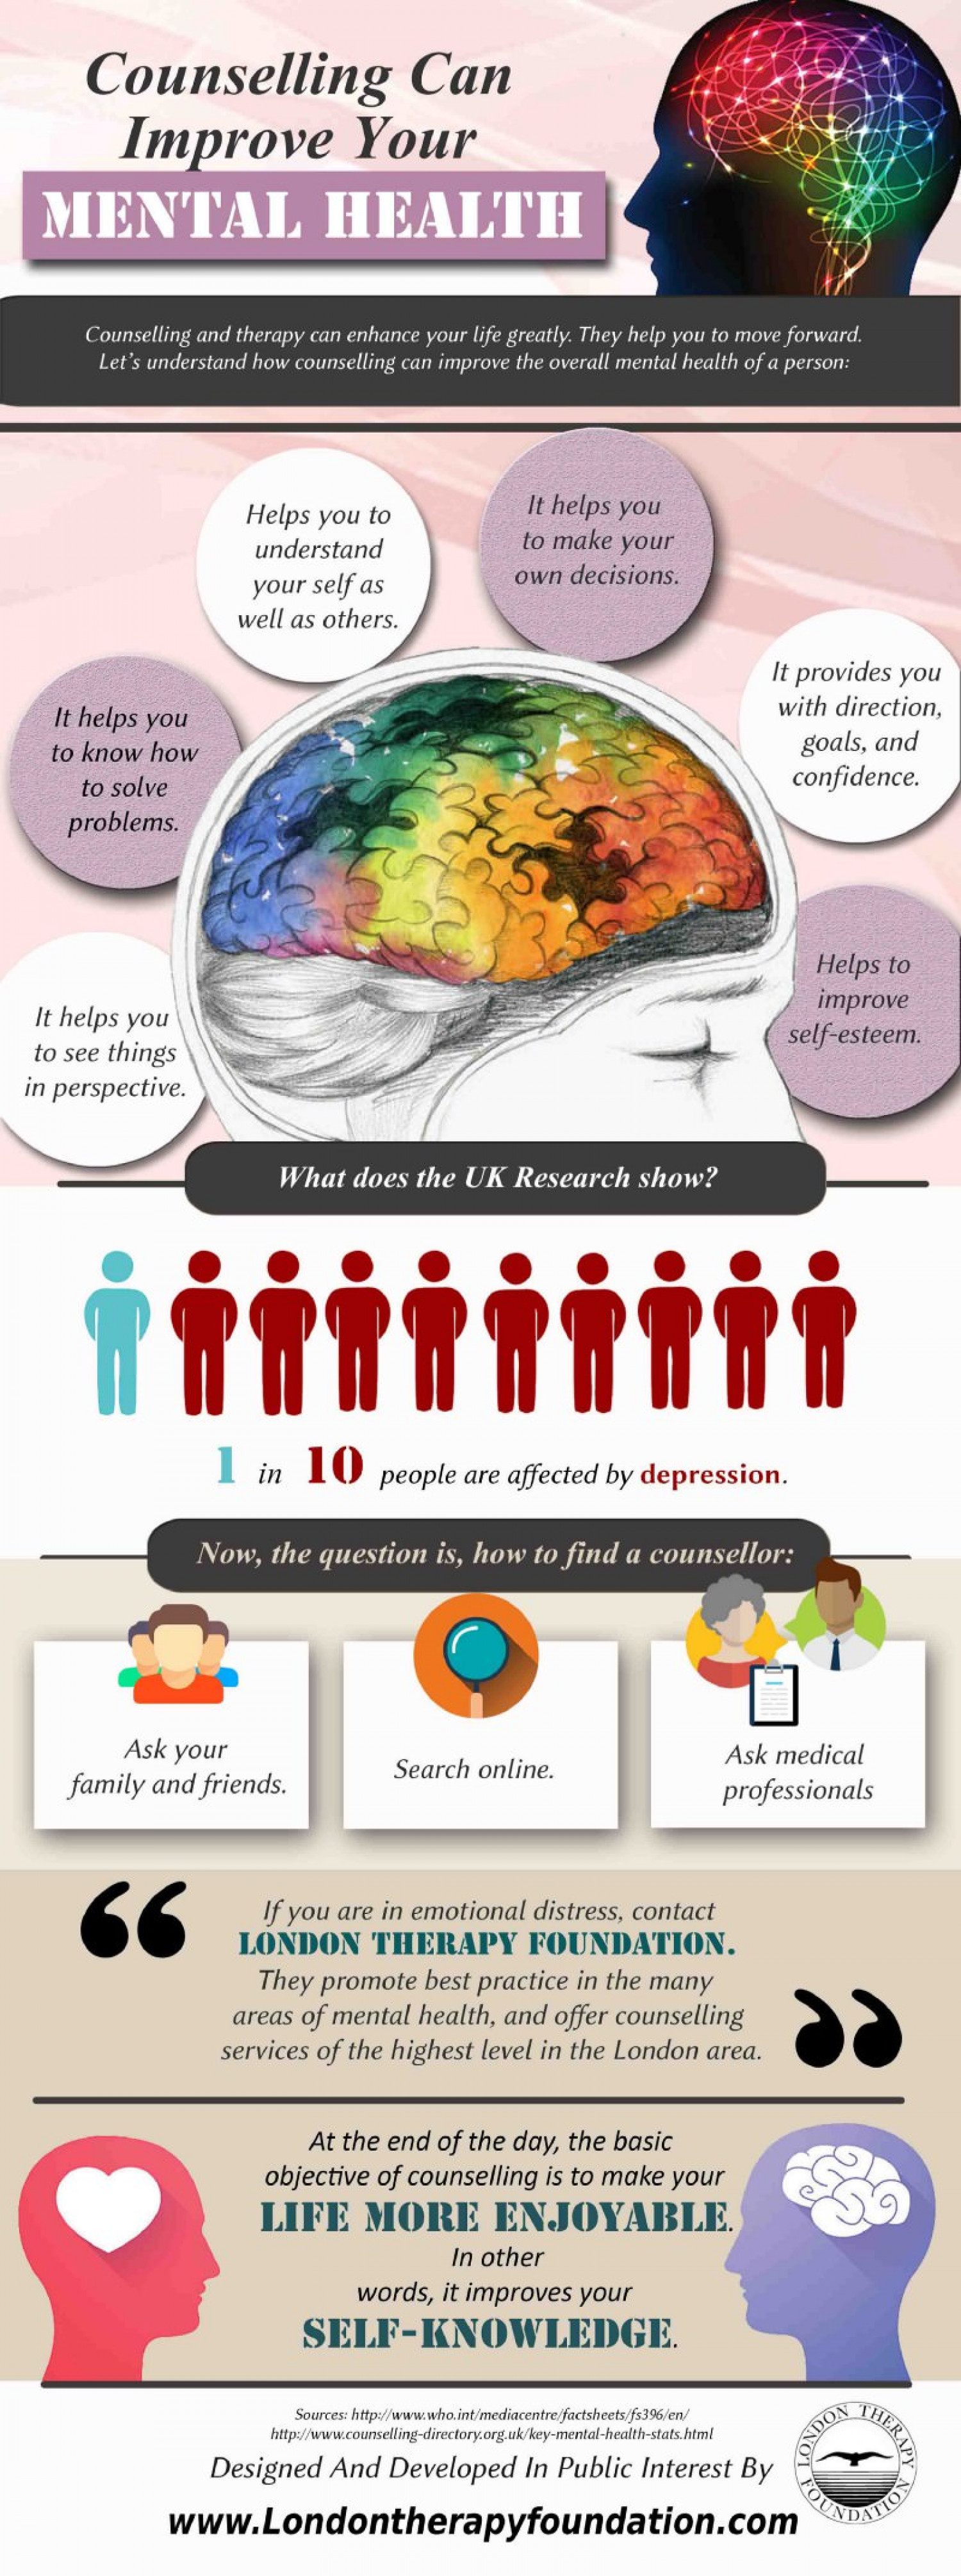 Counselling can improve your Mental Health Infographic